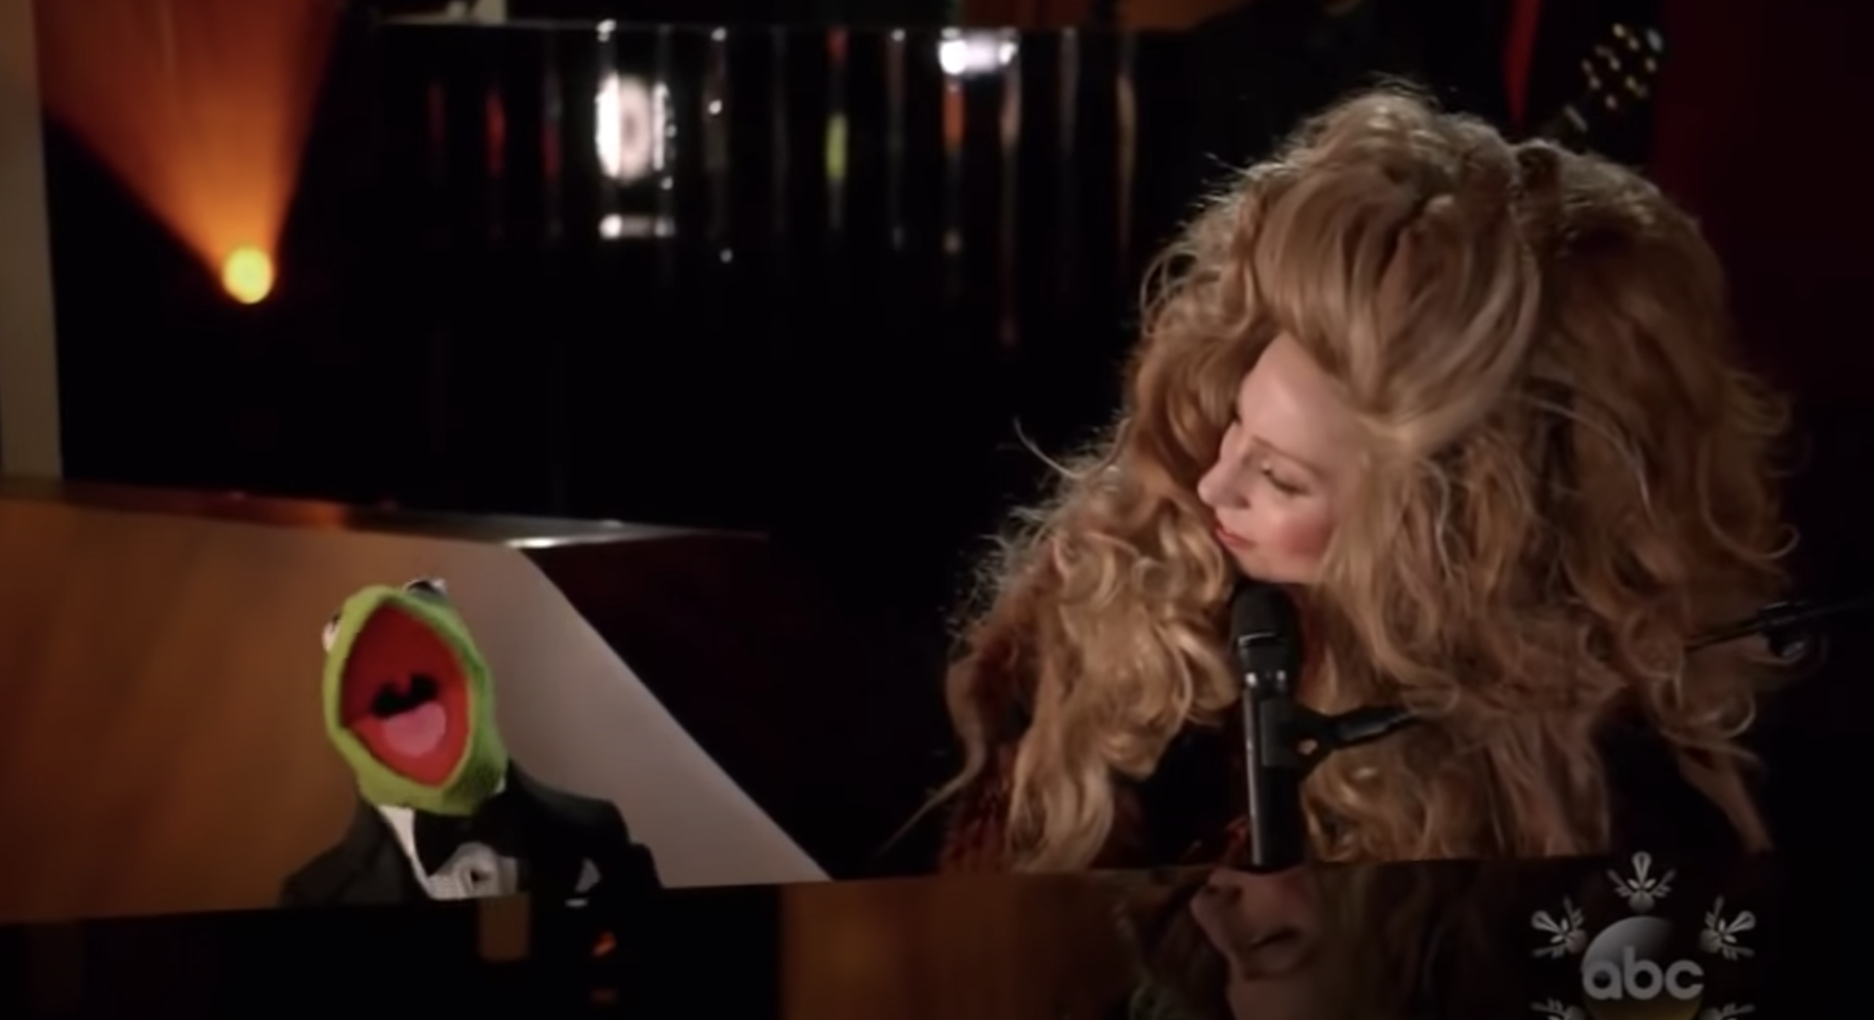 Gaga at the piano while Kermit sings